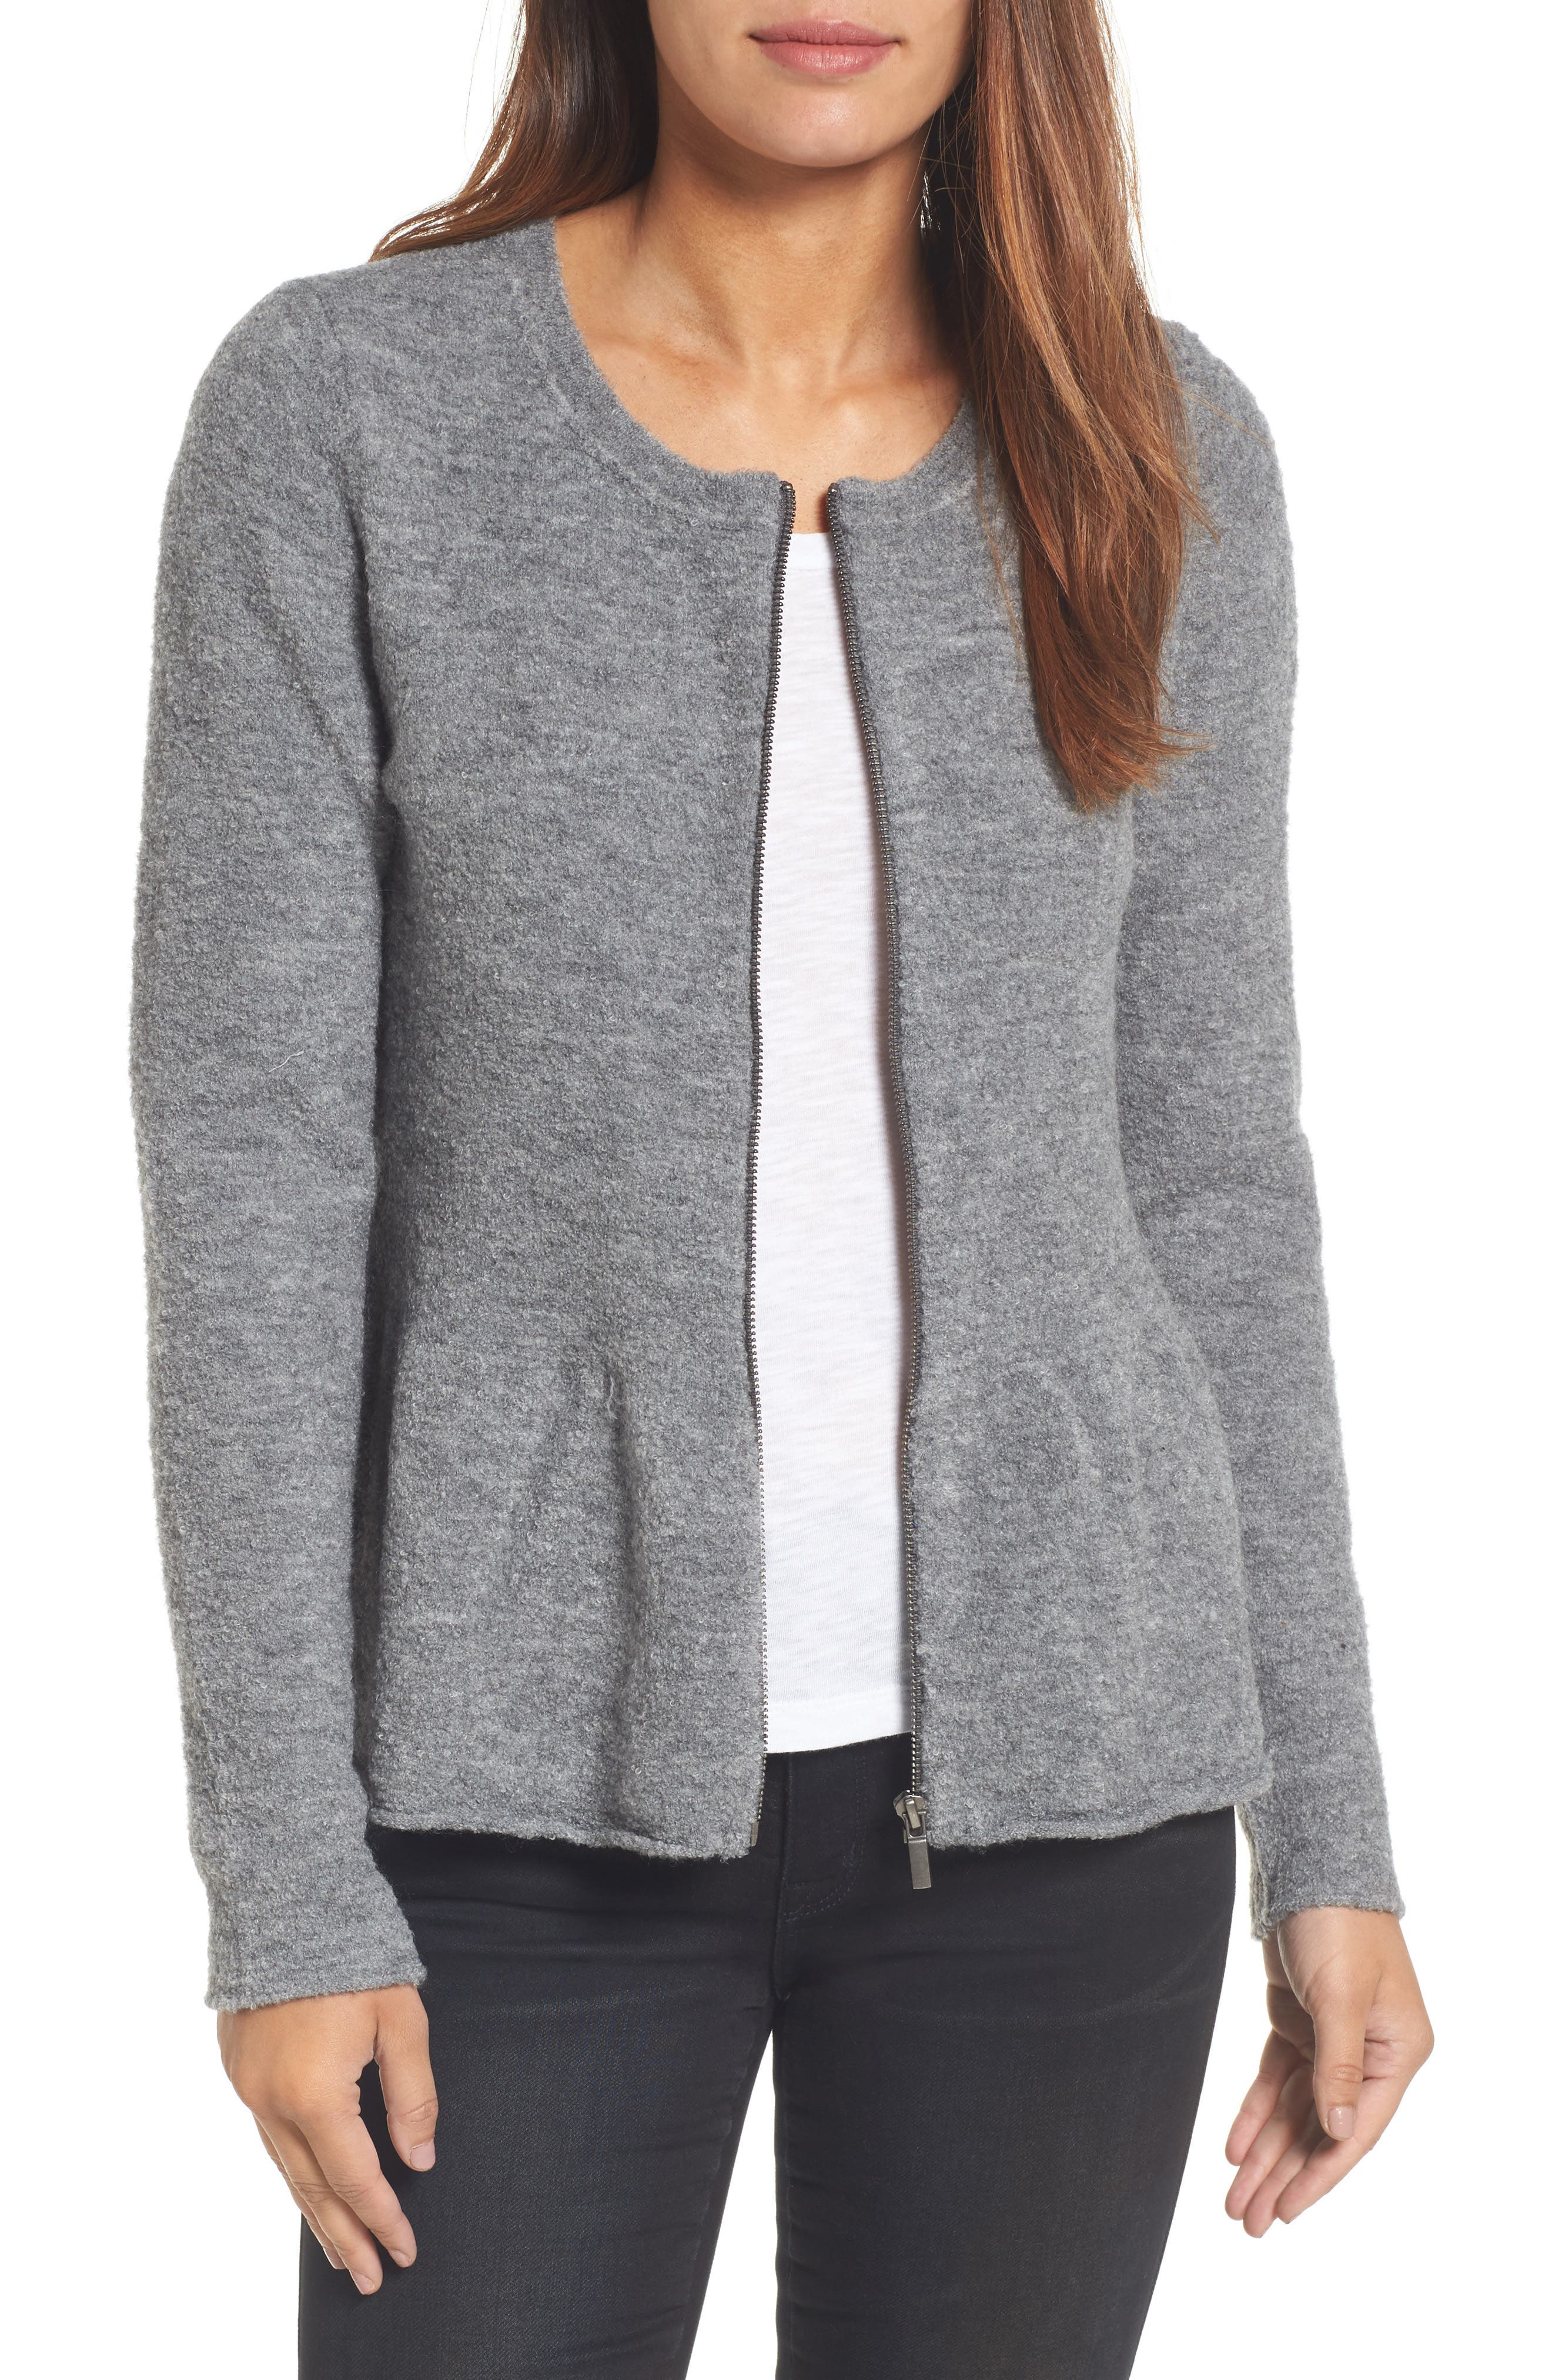 Alternate Image 1 Selected - Caslon® Peplum Bouclé Jacket (Regular & Petite)